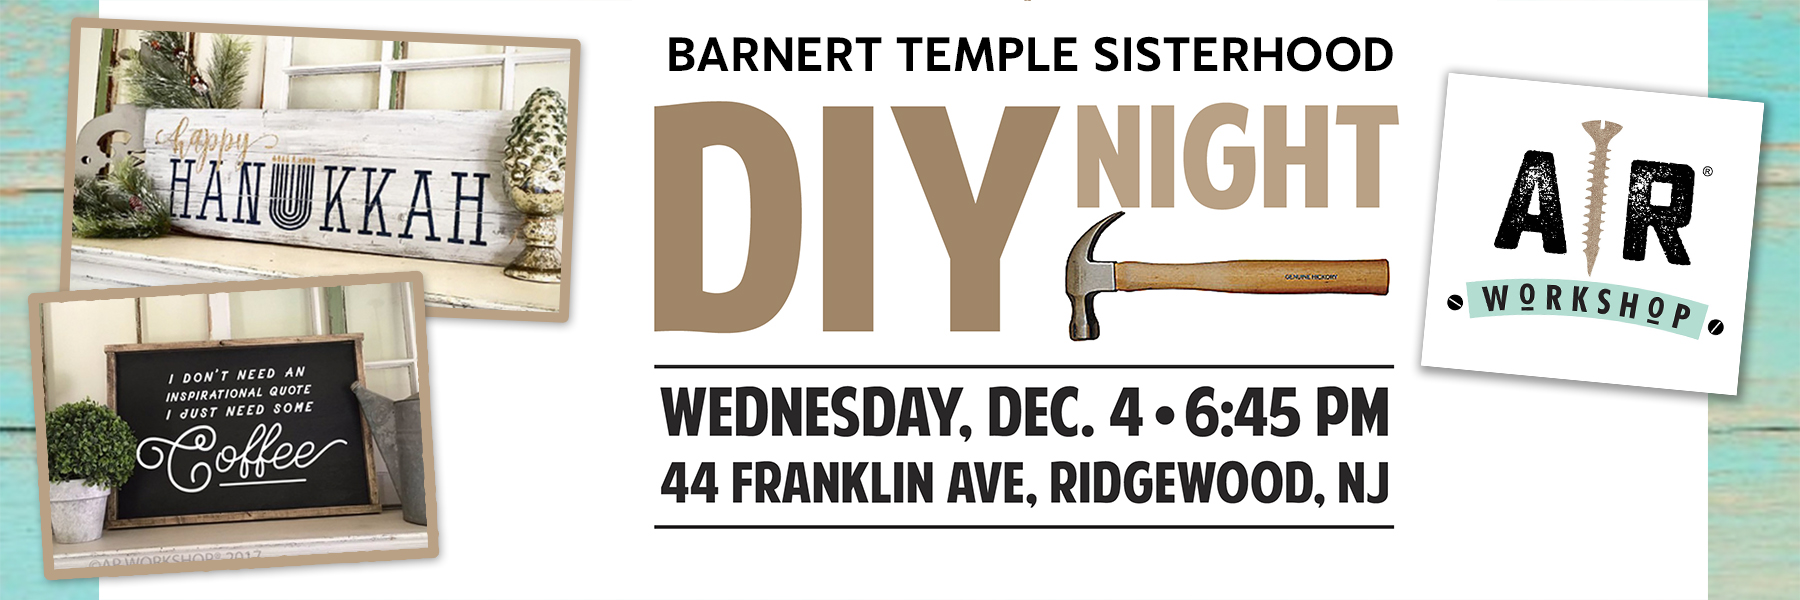 """<a href=""""https://www.barnerttemple.org/event/DIYNight""""                                     target=""""_blank"""">                                                                 <span class=""""slider_title"""">                                     Open to All Barnert Women & Men (13+)                                </span>                                                                 </a>                                                                                                                                                                                       <span class=""""slider_description"""">Open to women and men (13+).  Join us for a night of pure fun at AR Workshop in Ridgewood.  Assemble, paint and stencil your own project.  Make something for the holidays, for your home or a special gift for someone else. Advance registration required,  Price varies by project selected.  Click above for details.</span>"""